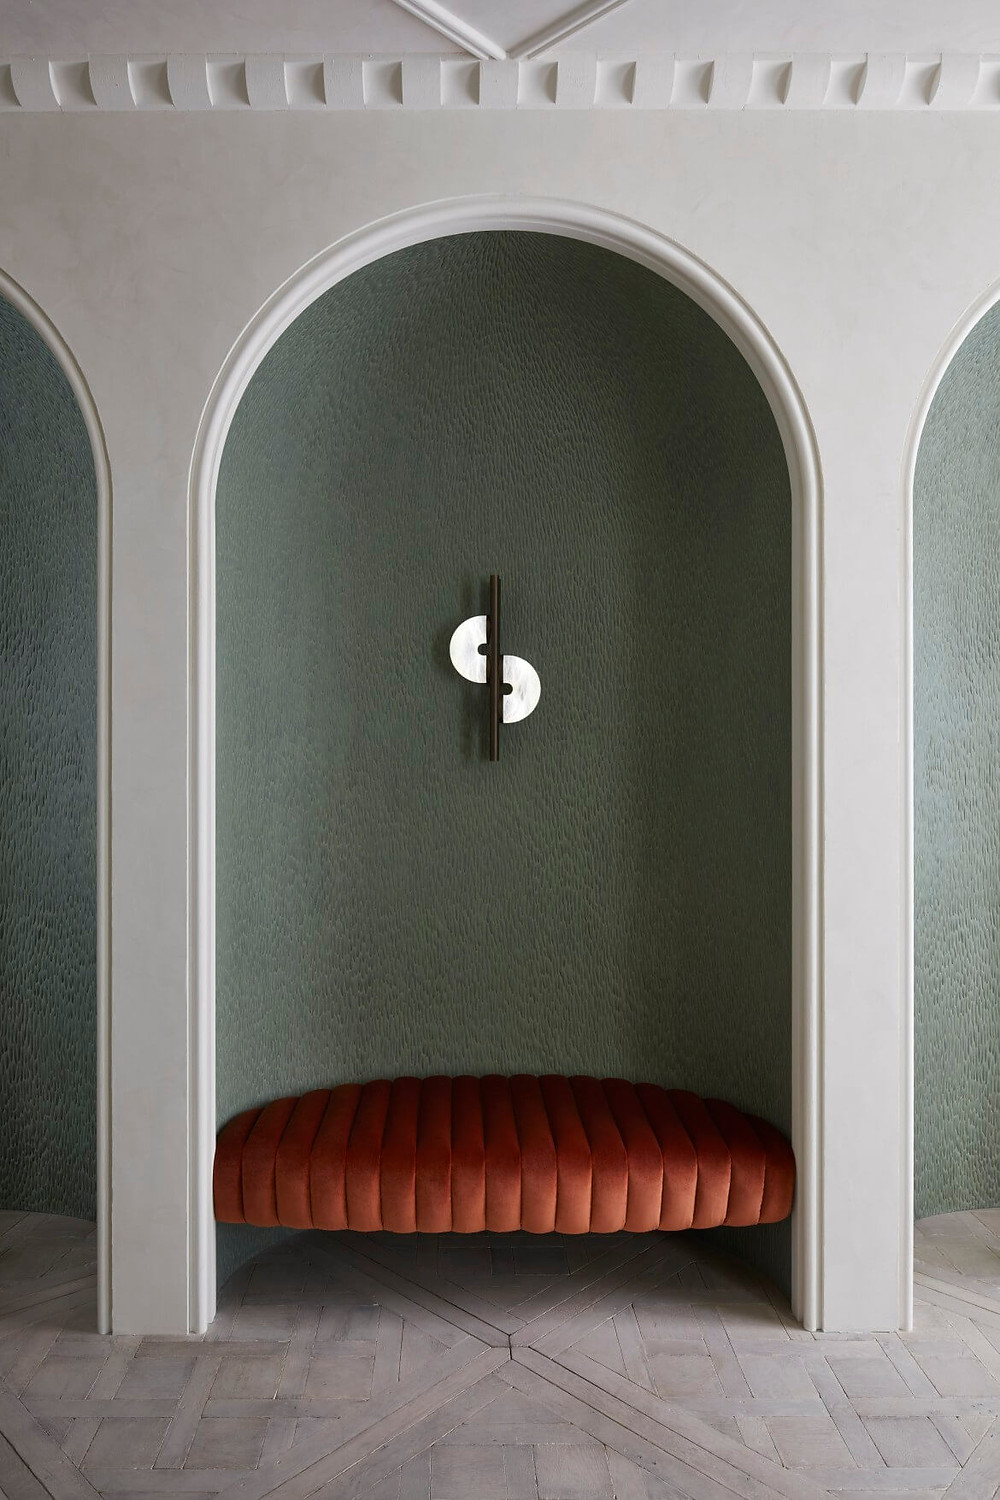 Deep coral coloured tufted bench seat custom placement in arched alcove. Sculptural arched wall sconce light above bench. Timber floors and impressive white cornices.